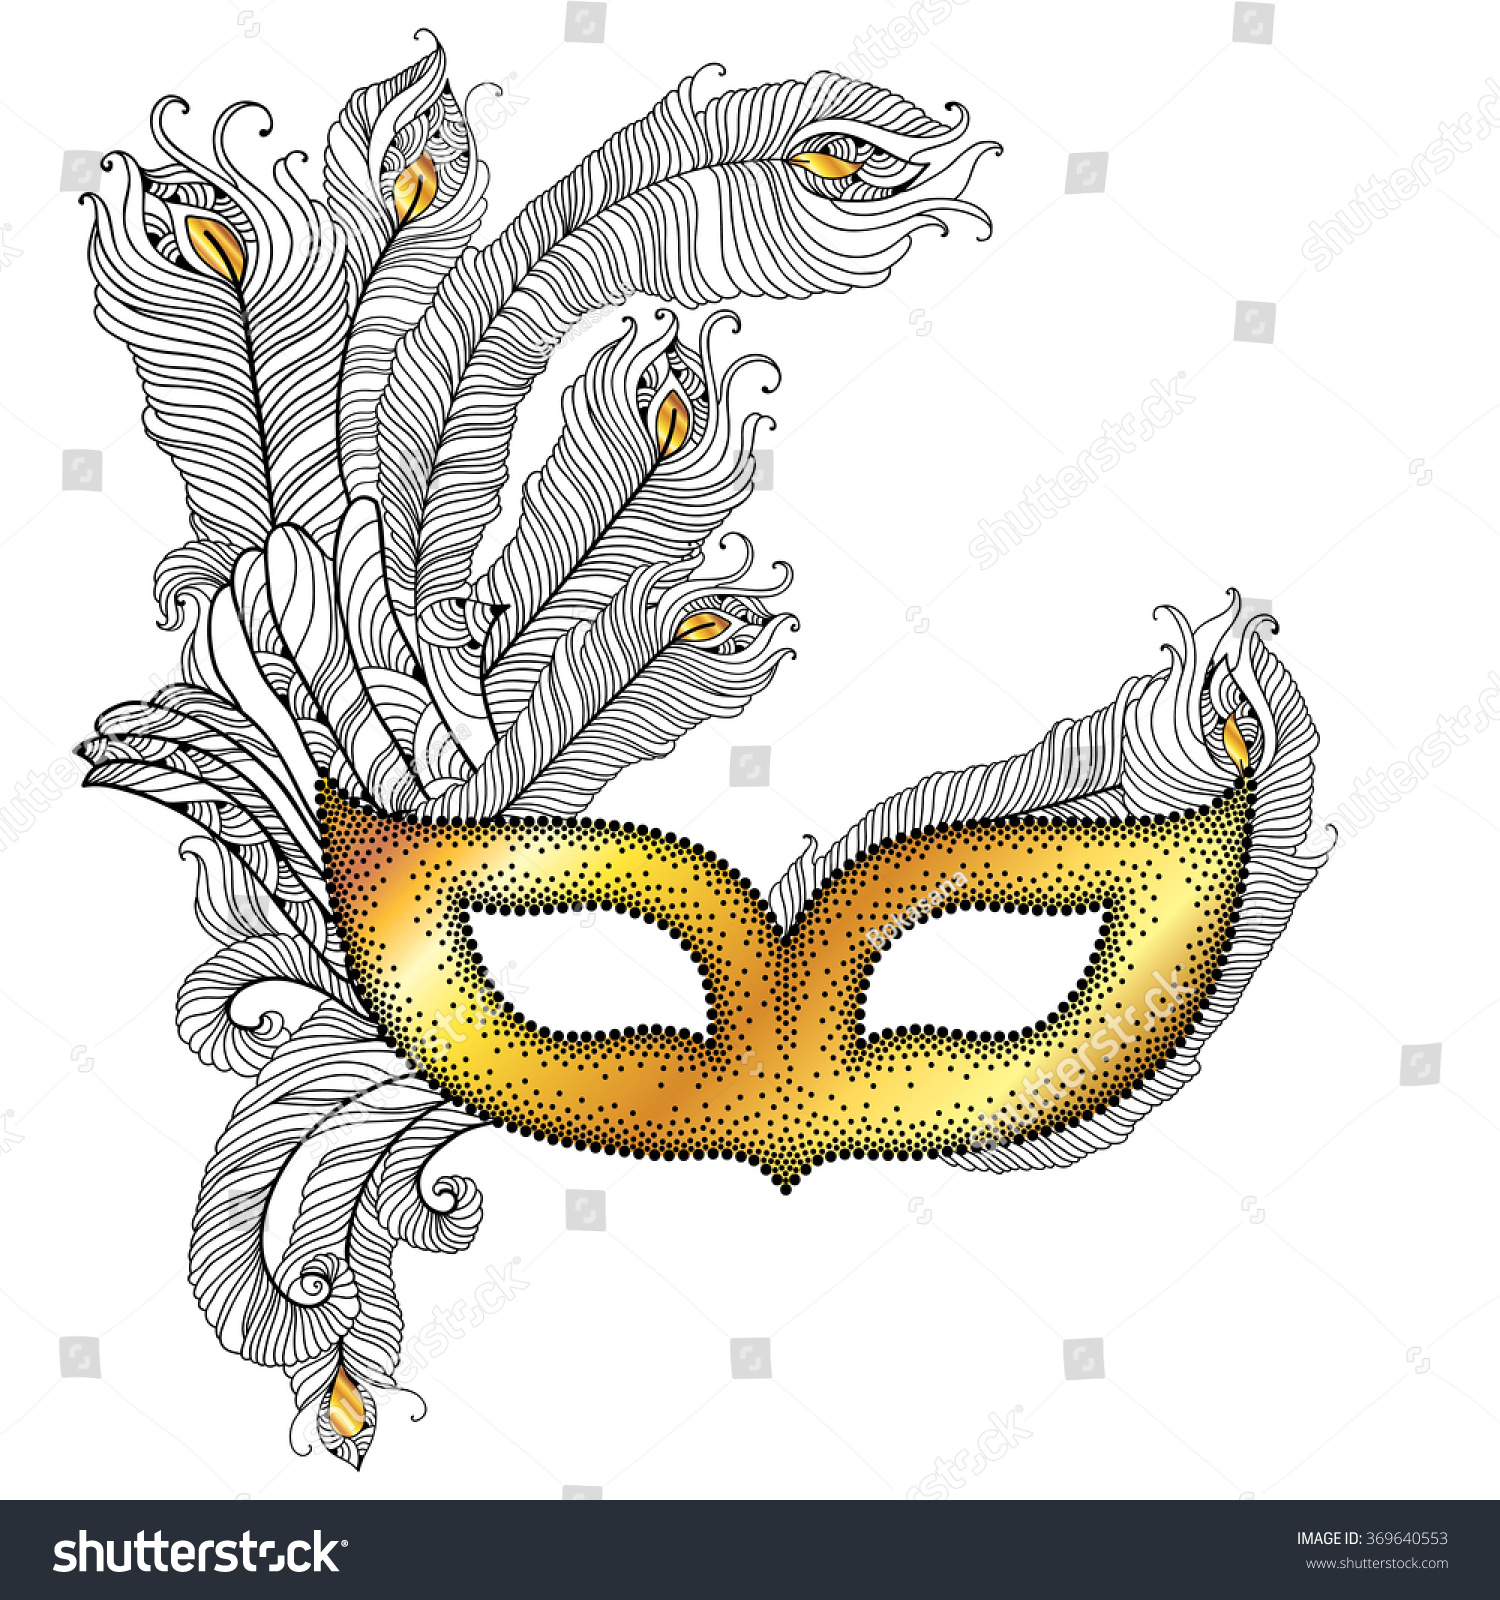 Dotted Venetian Carnival Mask Colombina With Outline Peacock Feathers In Black Isolated On White Background Traditional Attribute For Masquerade